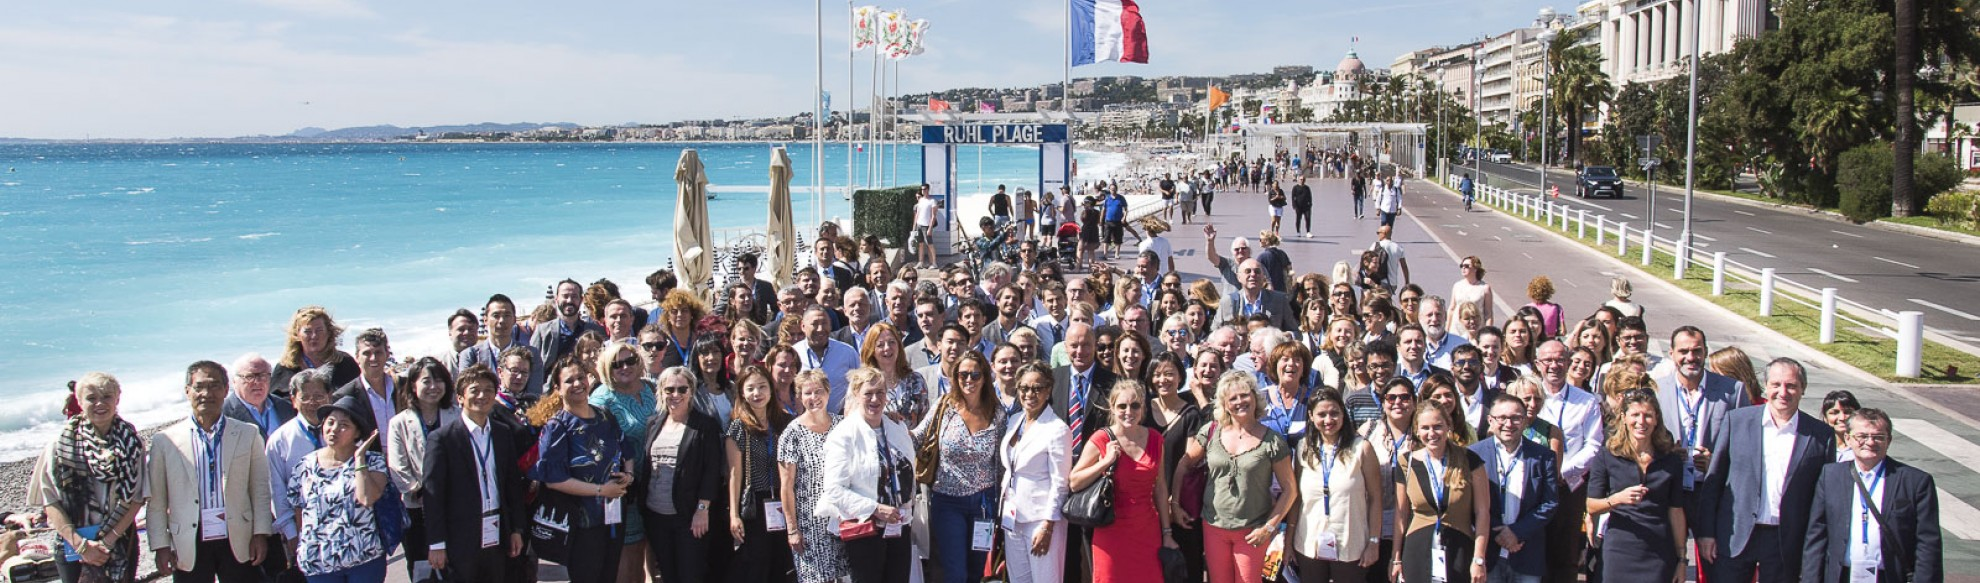 Evénement France Meeting Hub 2017 à Nice